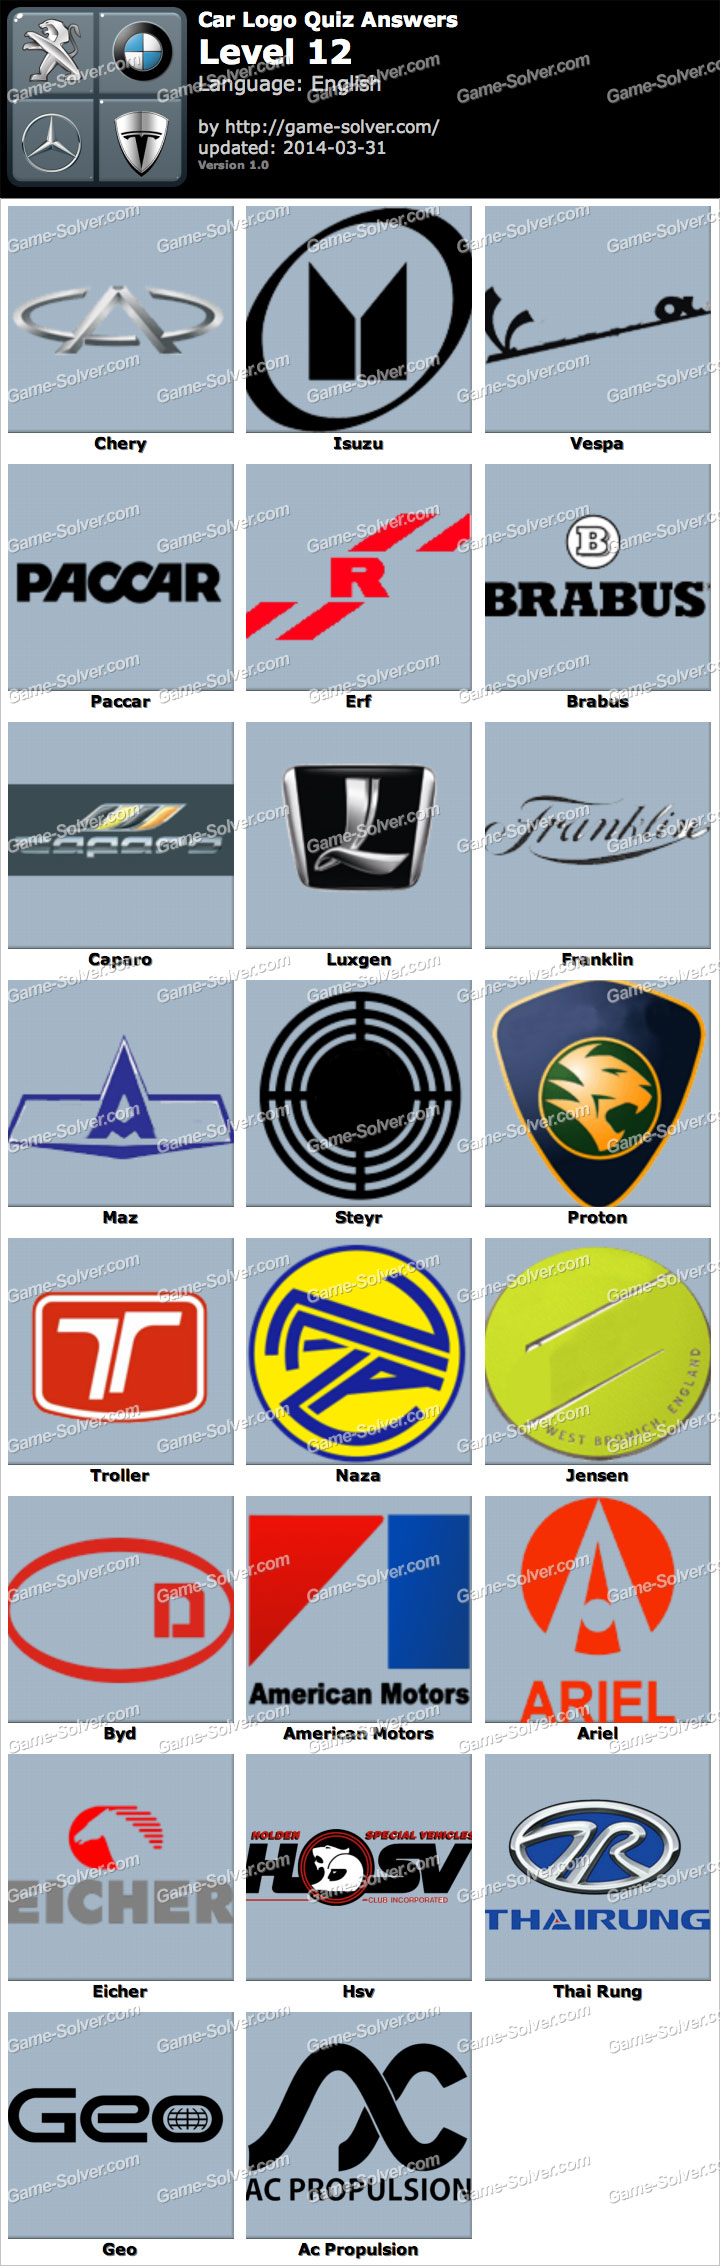 Car Logos Quiz Answers | www.pixshark.com - Images ...